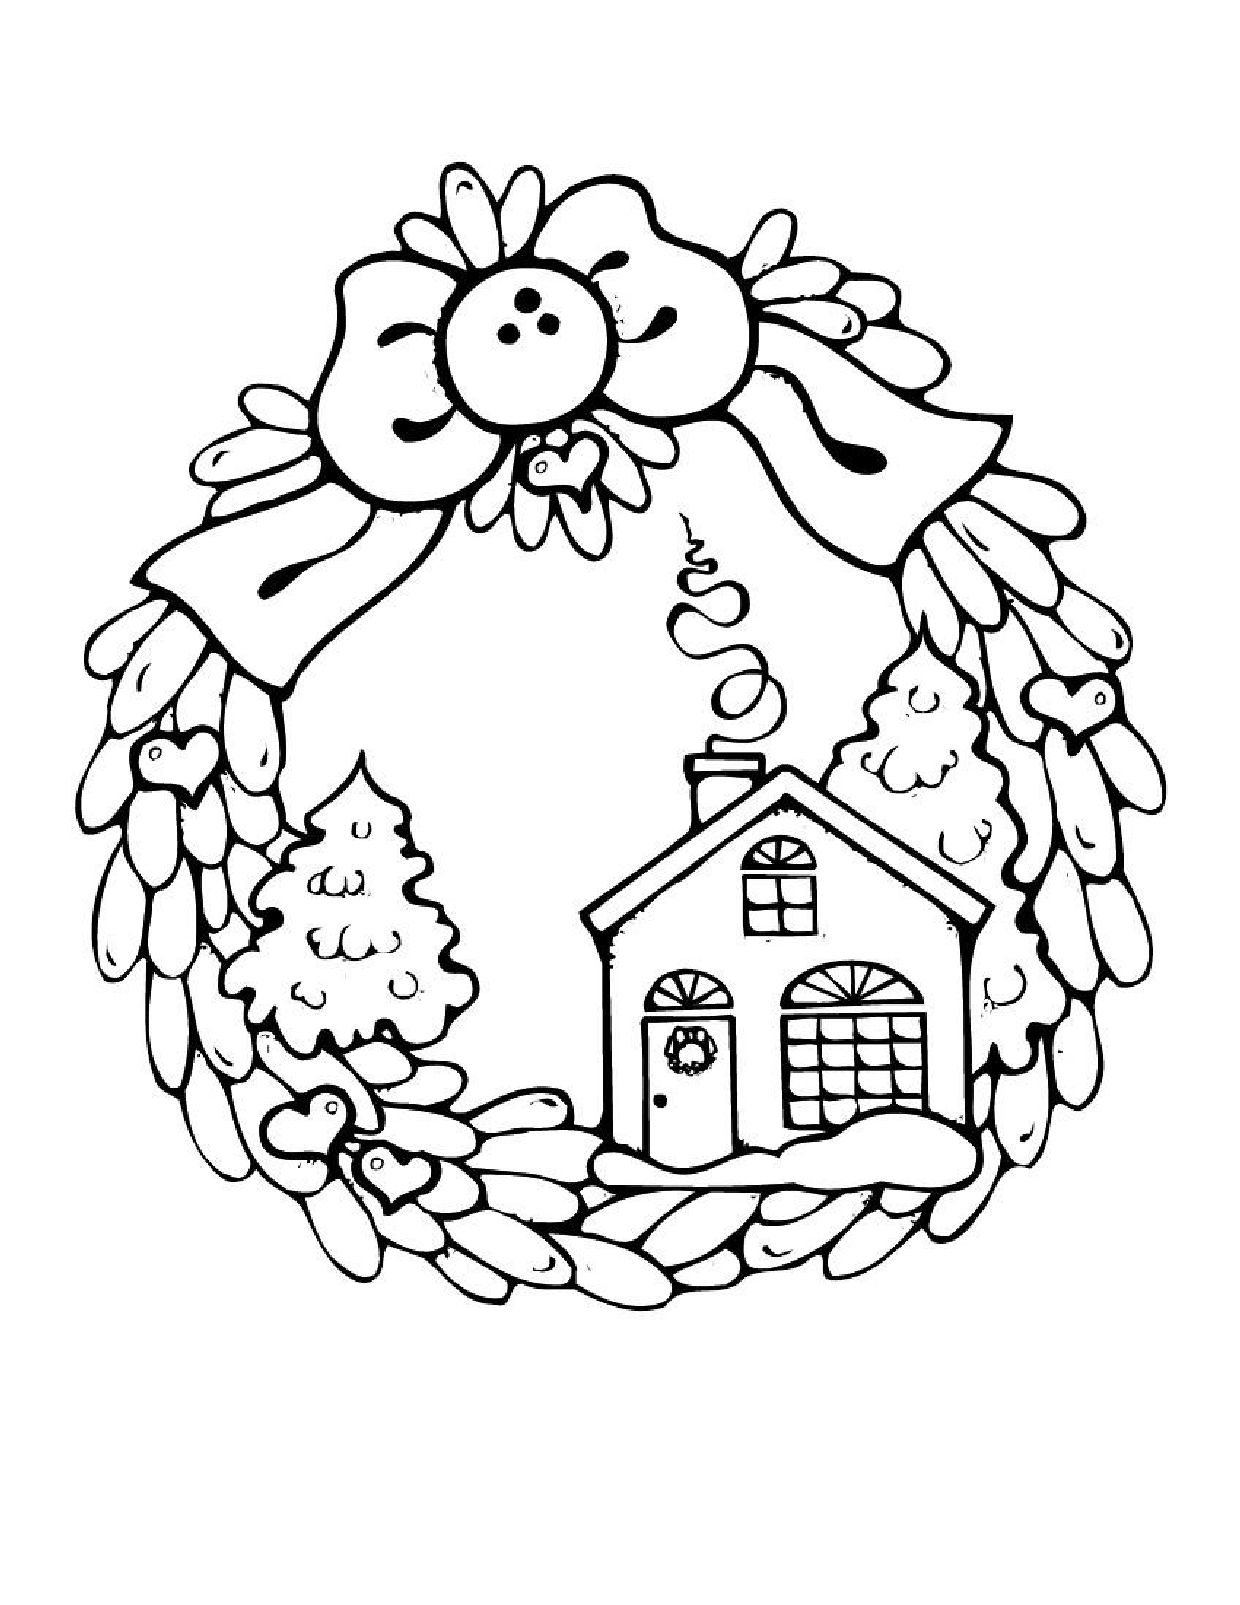 Christmas Coloring Pages Wreath With Houses Candy House Page